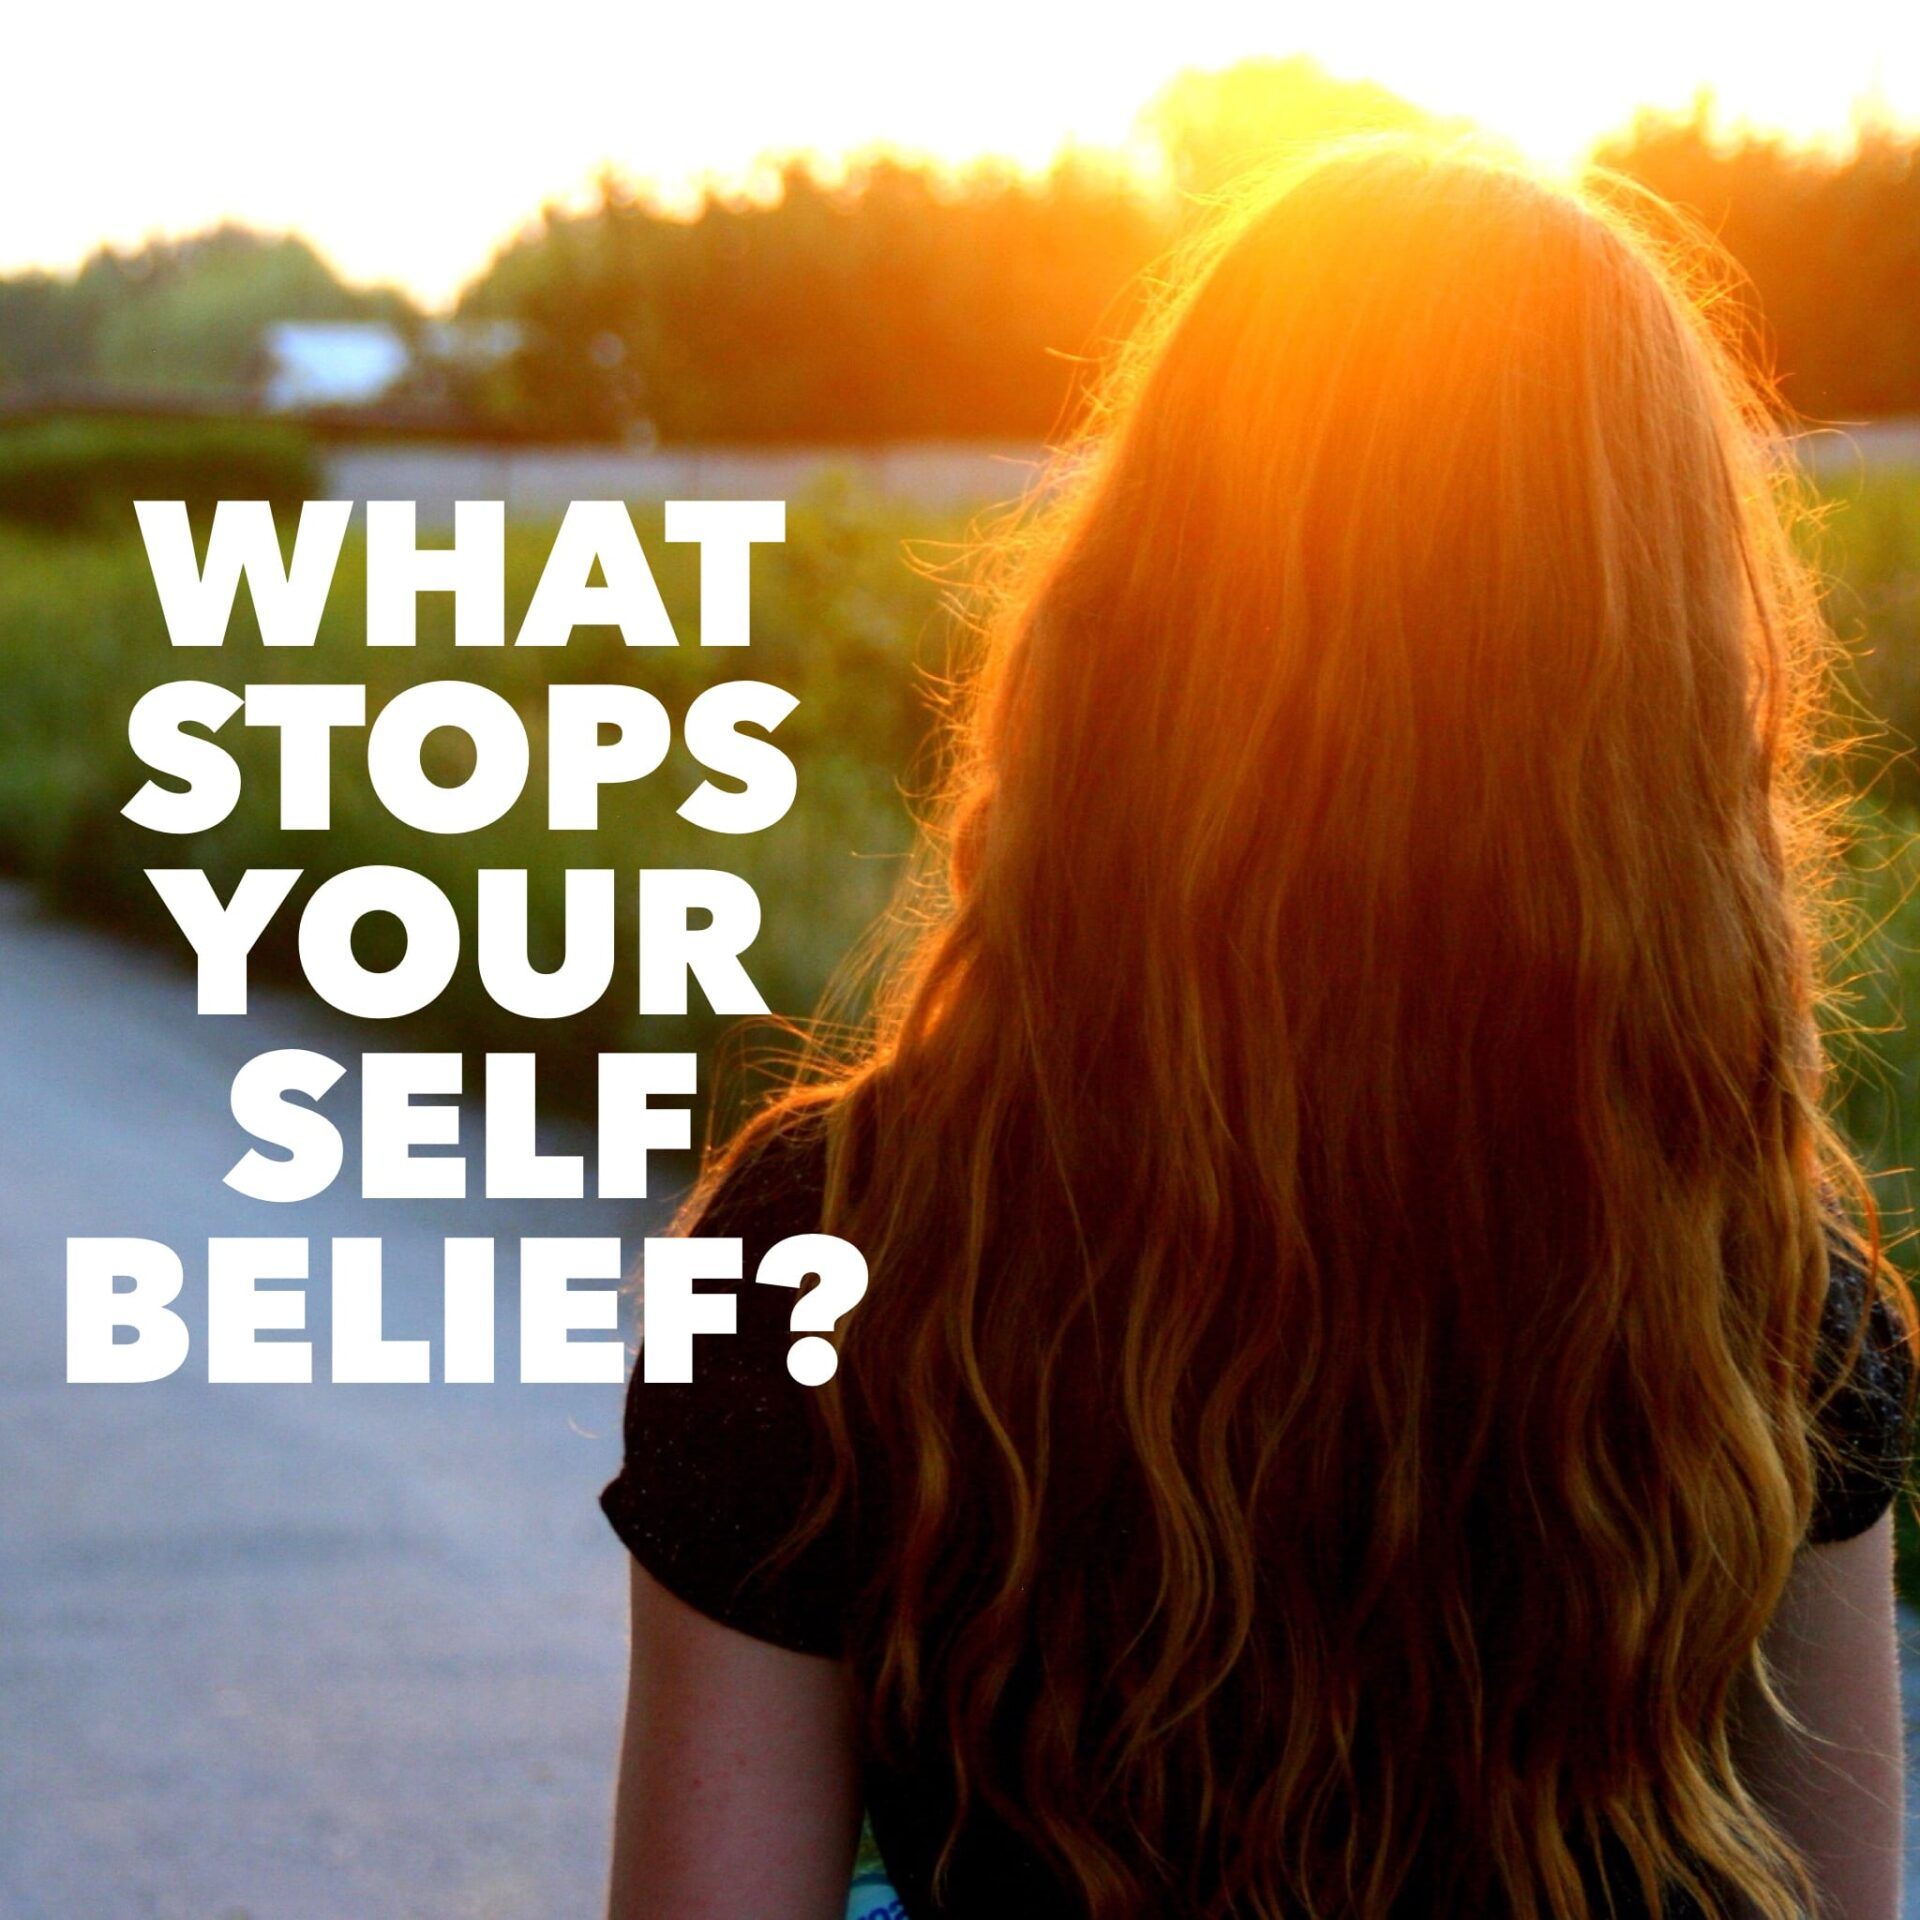 What stops your self-belief?